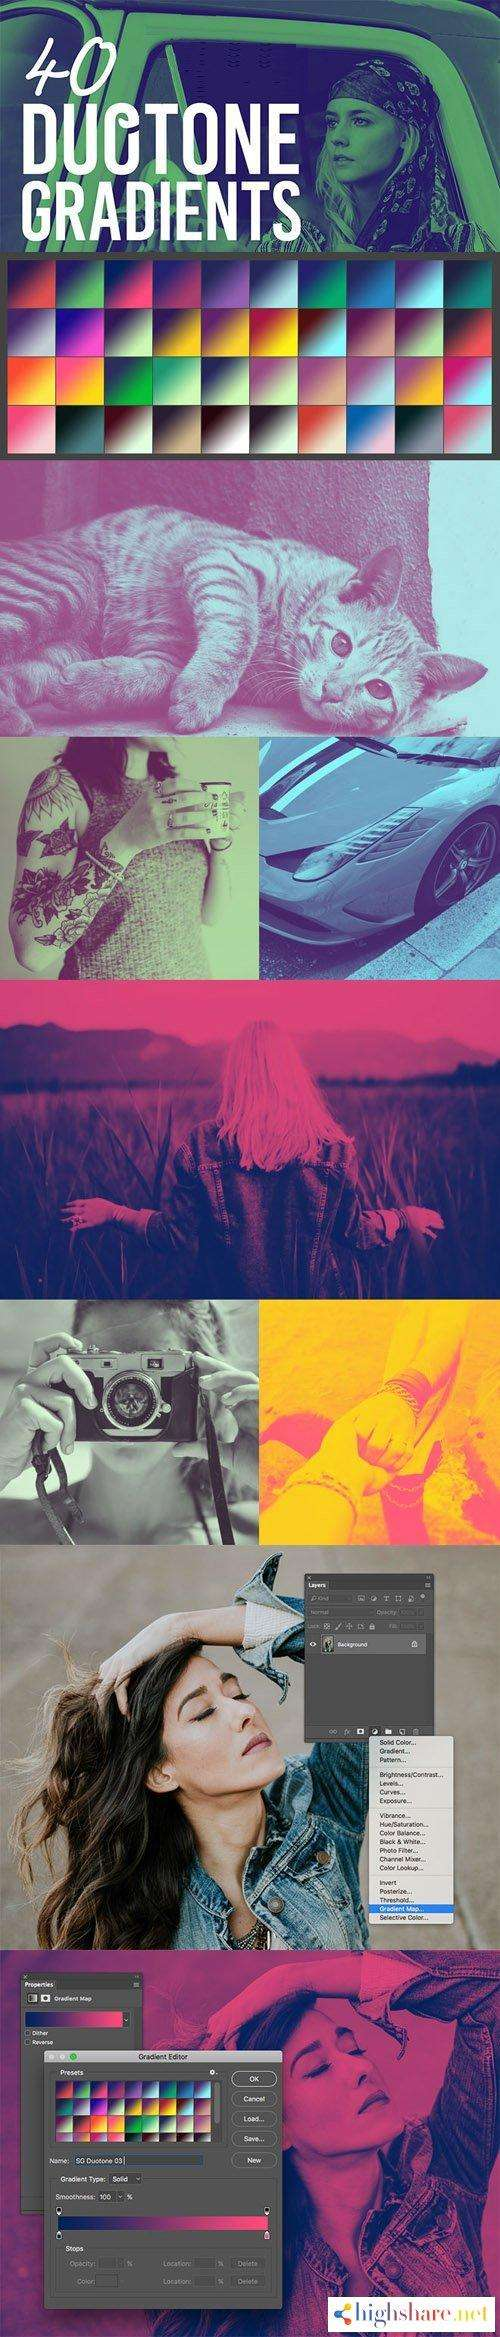 40 duotone gradient presets for photoshop grd 5f49f6aa62a91 - 40 Duotone Gradient Presets for Photoshop (GRD)